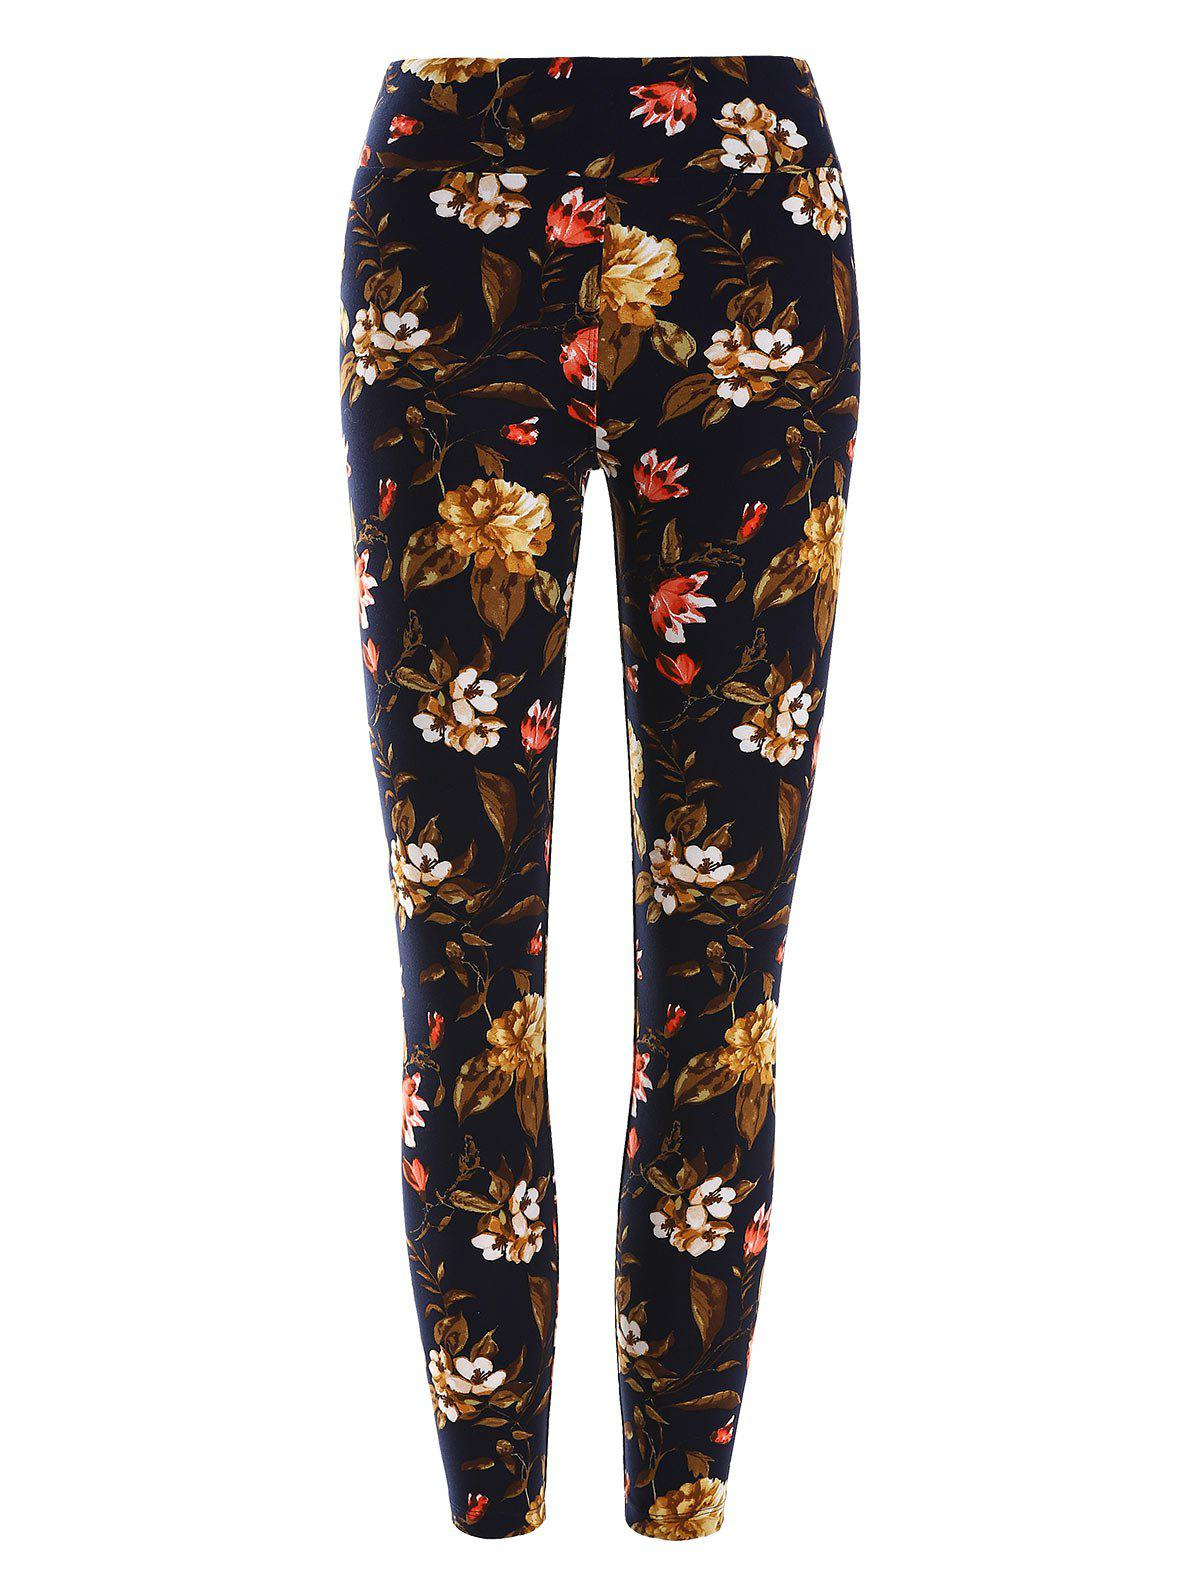 Unique High Waisted Floral Print Leggings